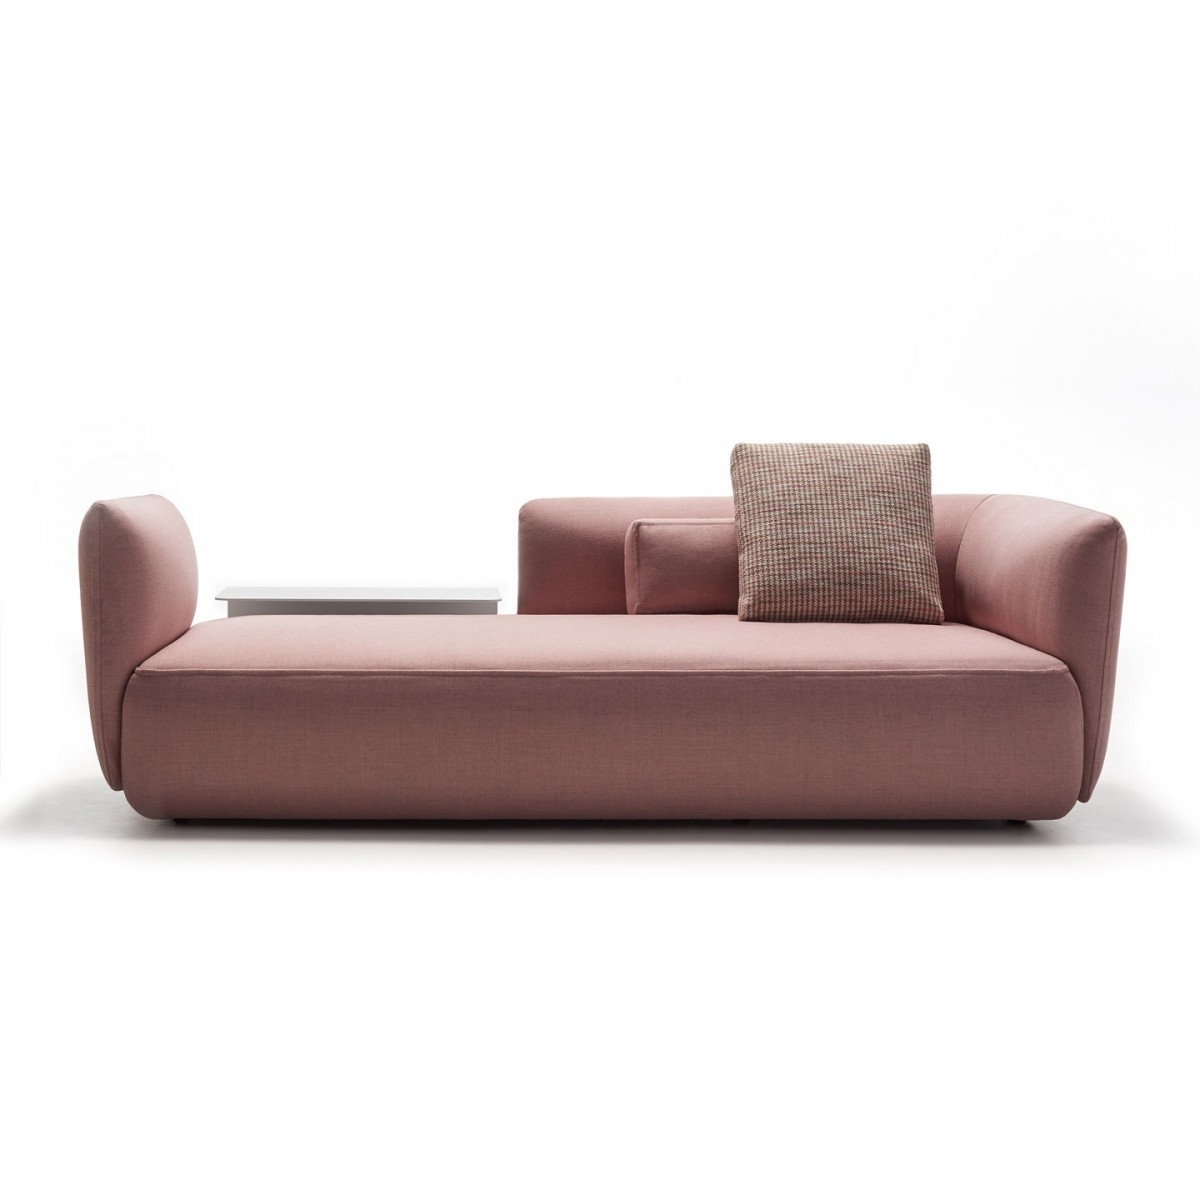 Low Sofas For Latest Contemporary Designer Sofas (View 6 of 15)